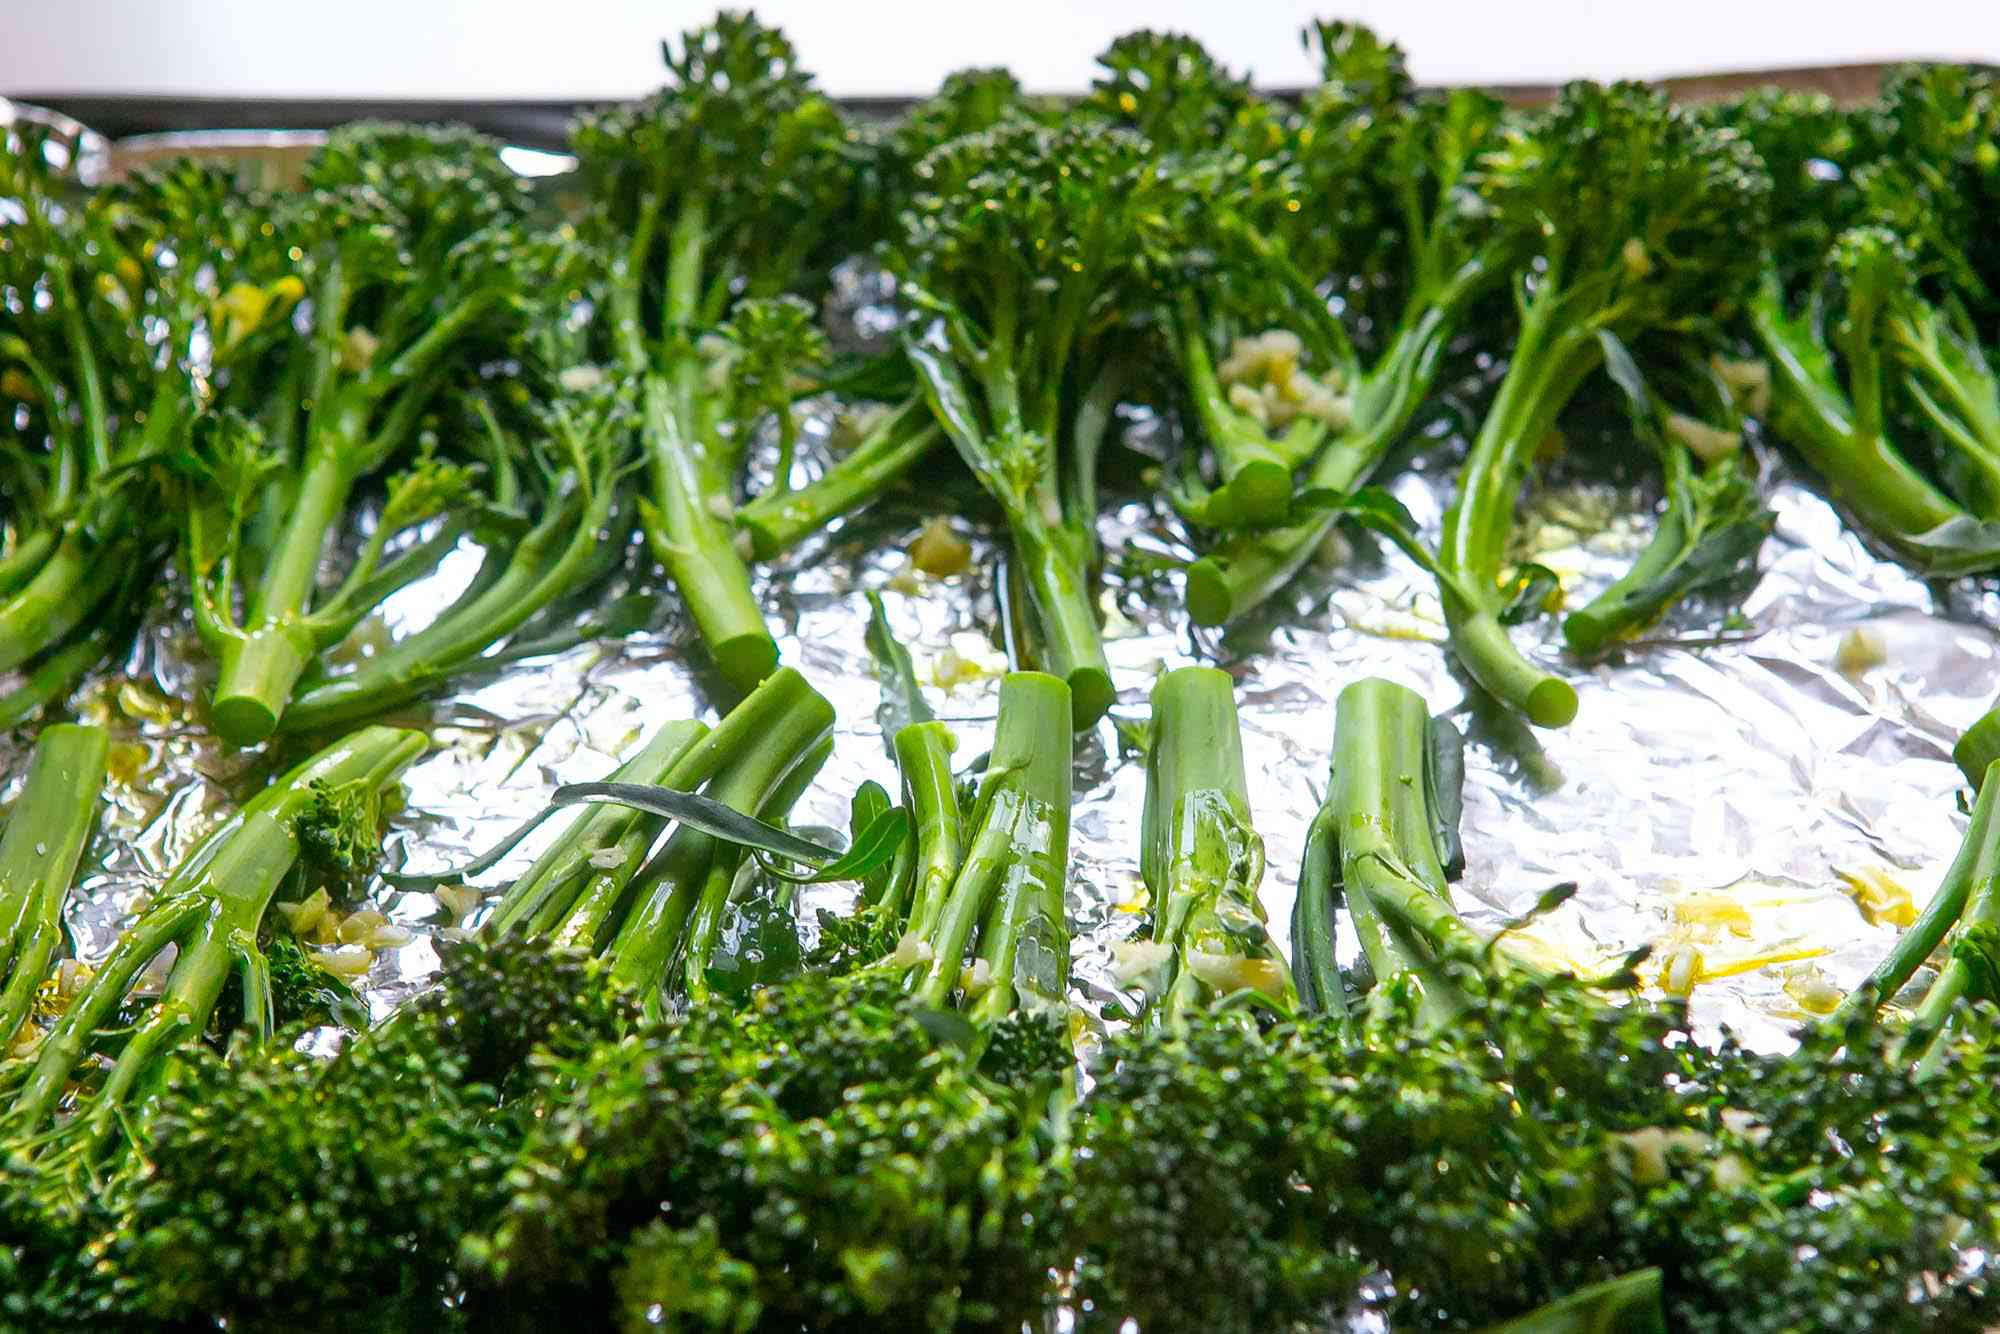 A baking sheet filled with broccolini to show how to cook broccolini.